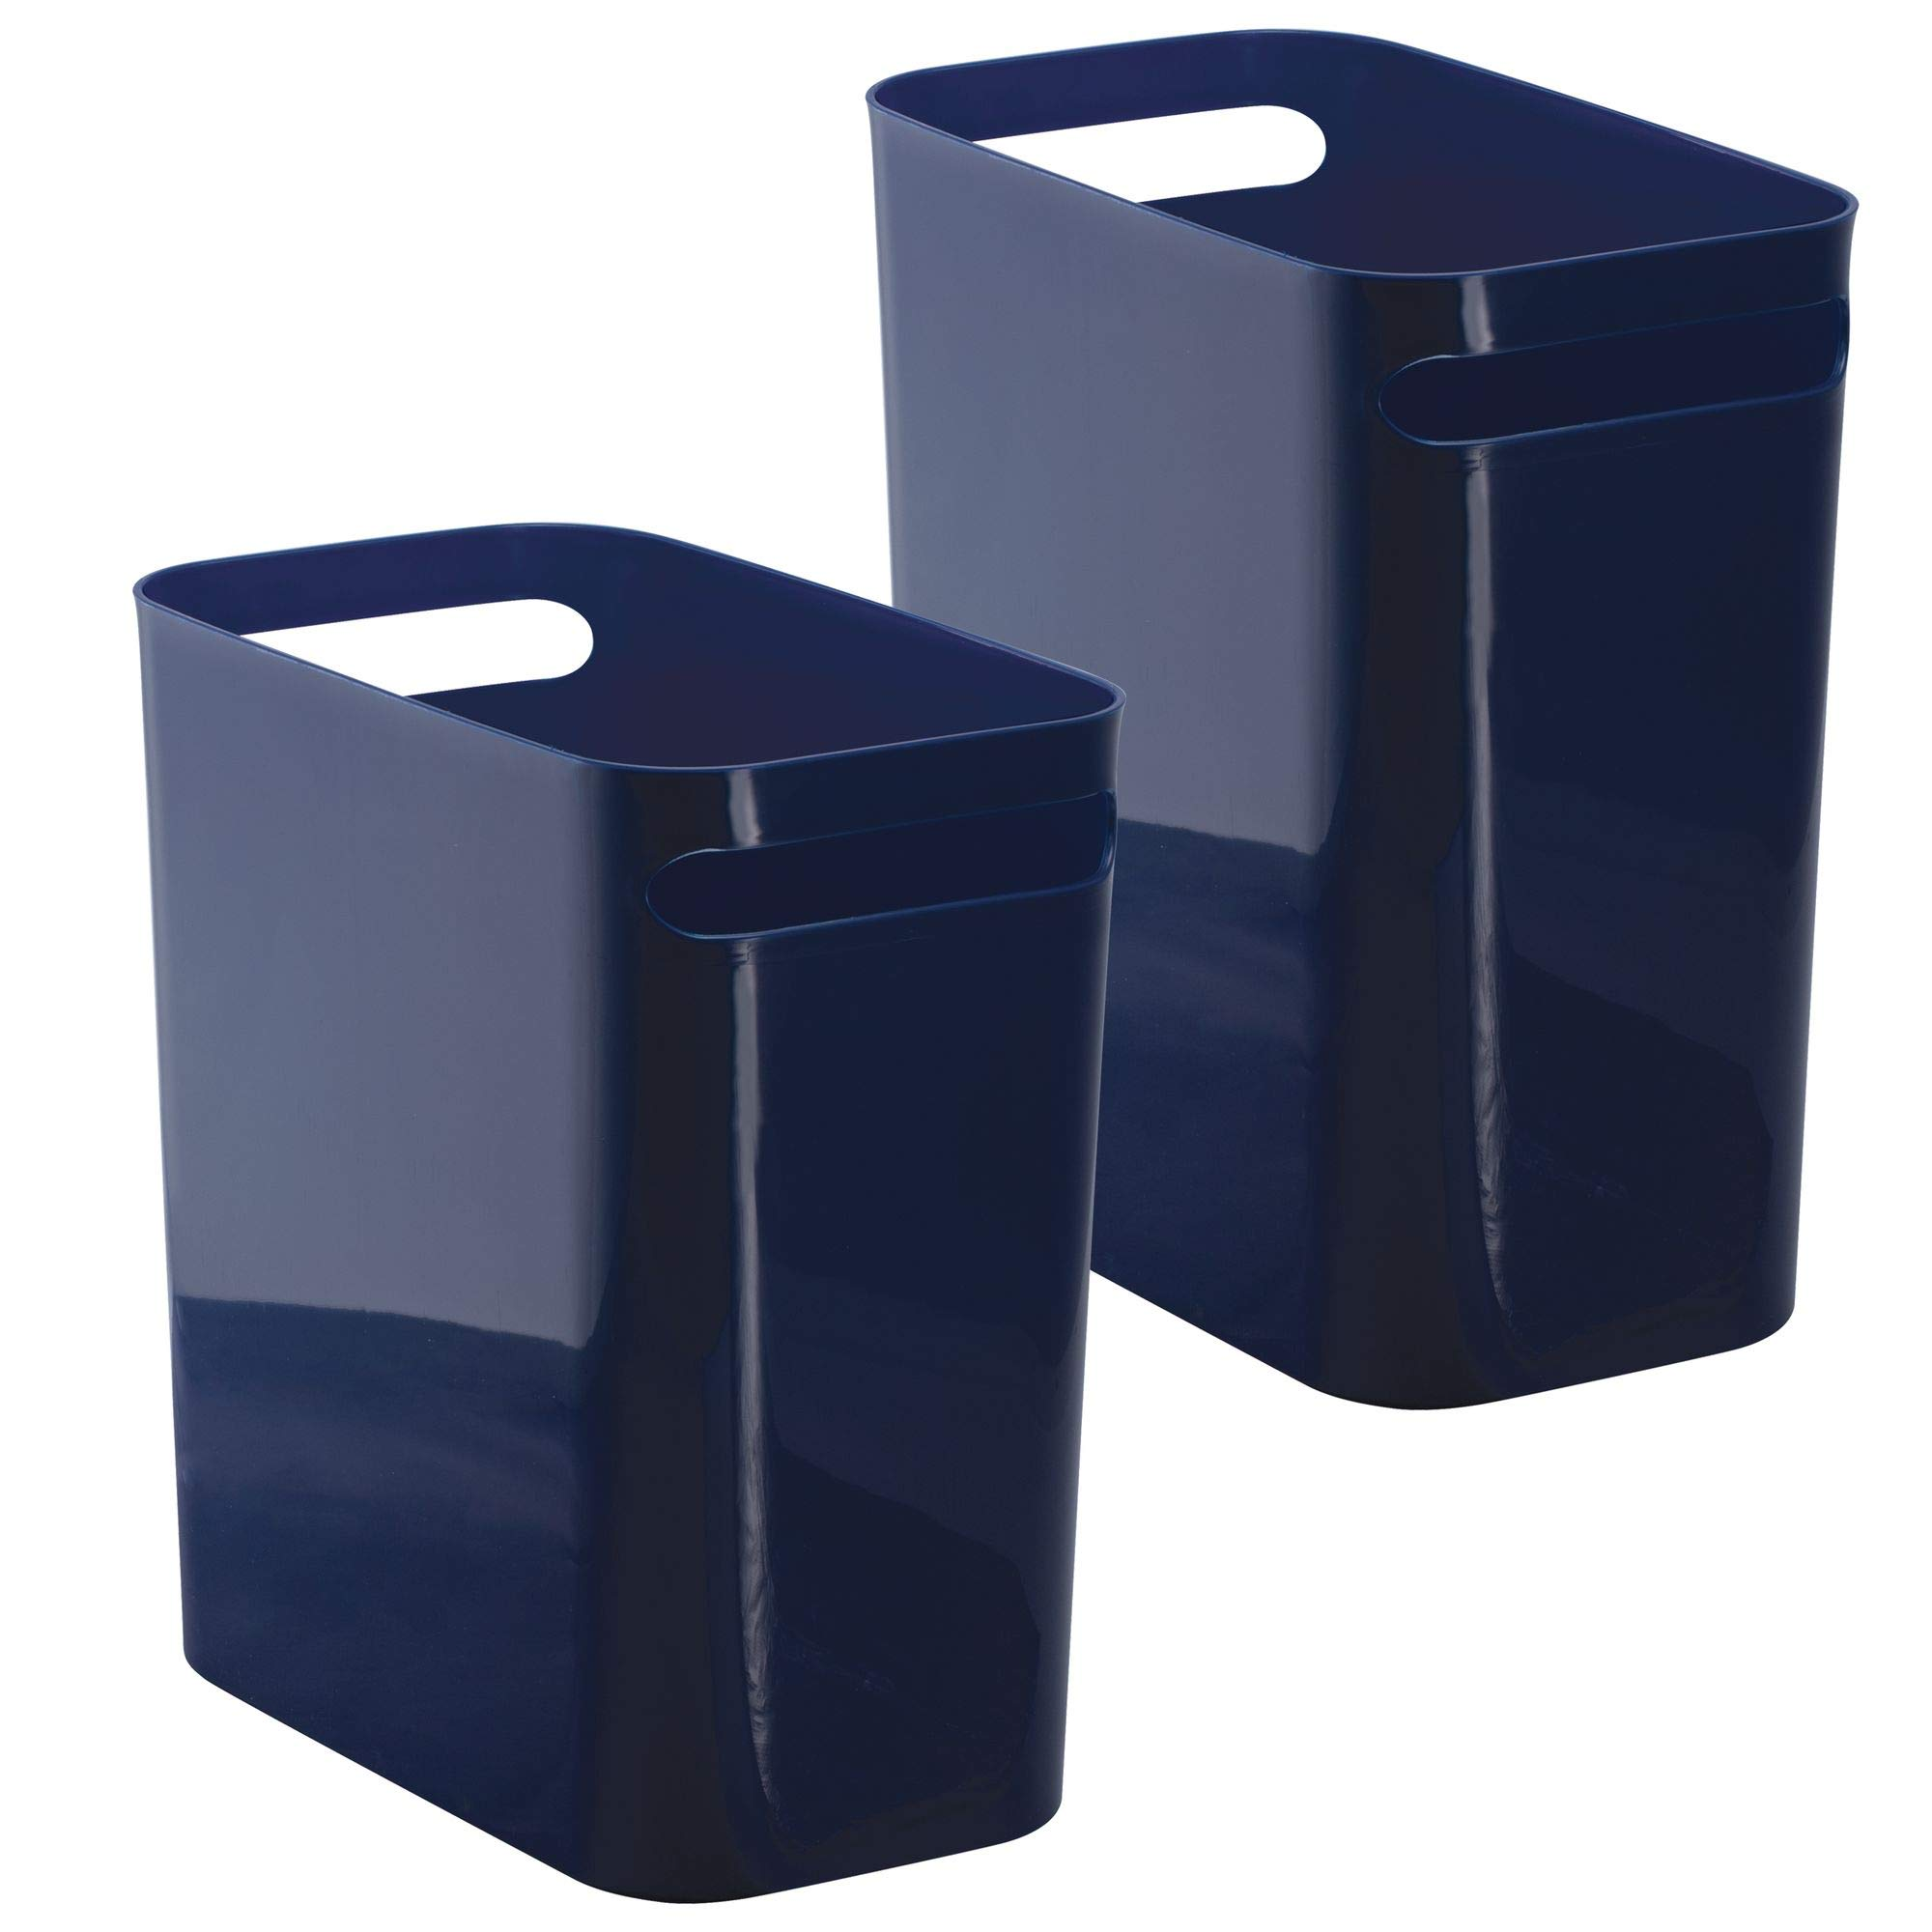 mDesign Slim Rectangular Small Trash Can Wastebasket, Garbage Container Bin with Handles for Bathrooms, Kitchens, Home Offices, Dorms, Kids Rooms � Pack of 2, 12 inch high, Plastic, Navy Blue